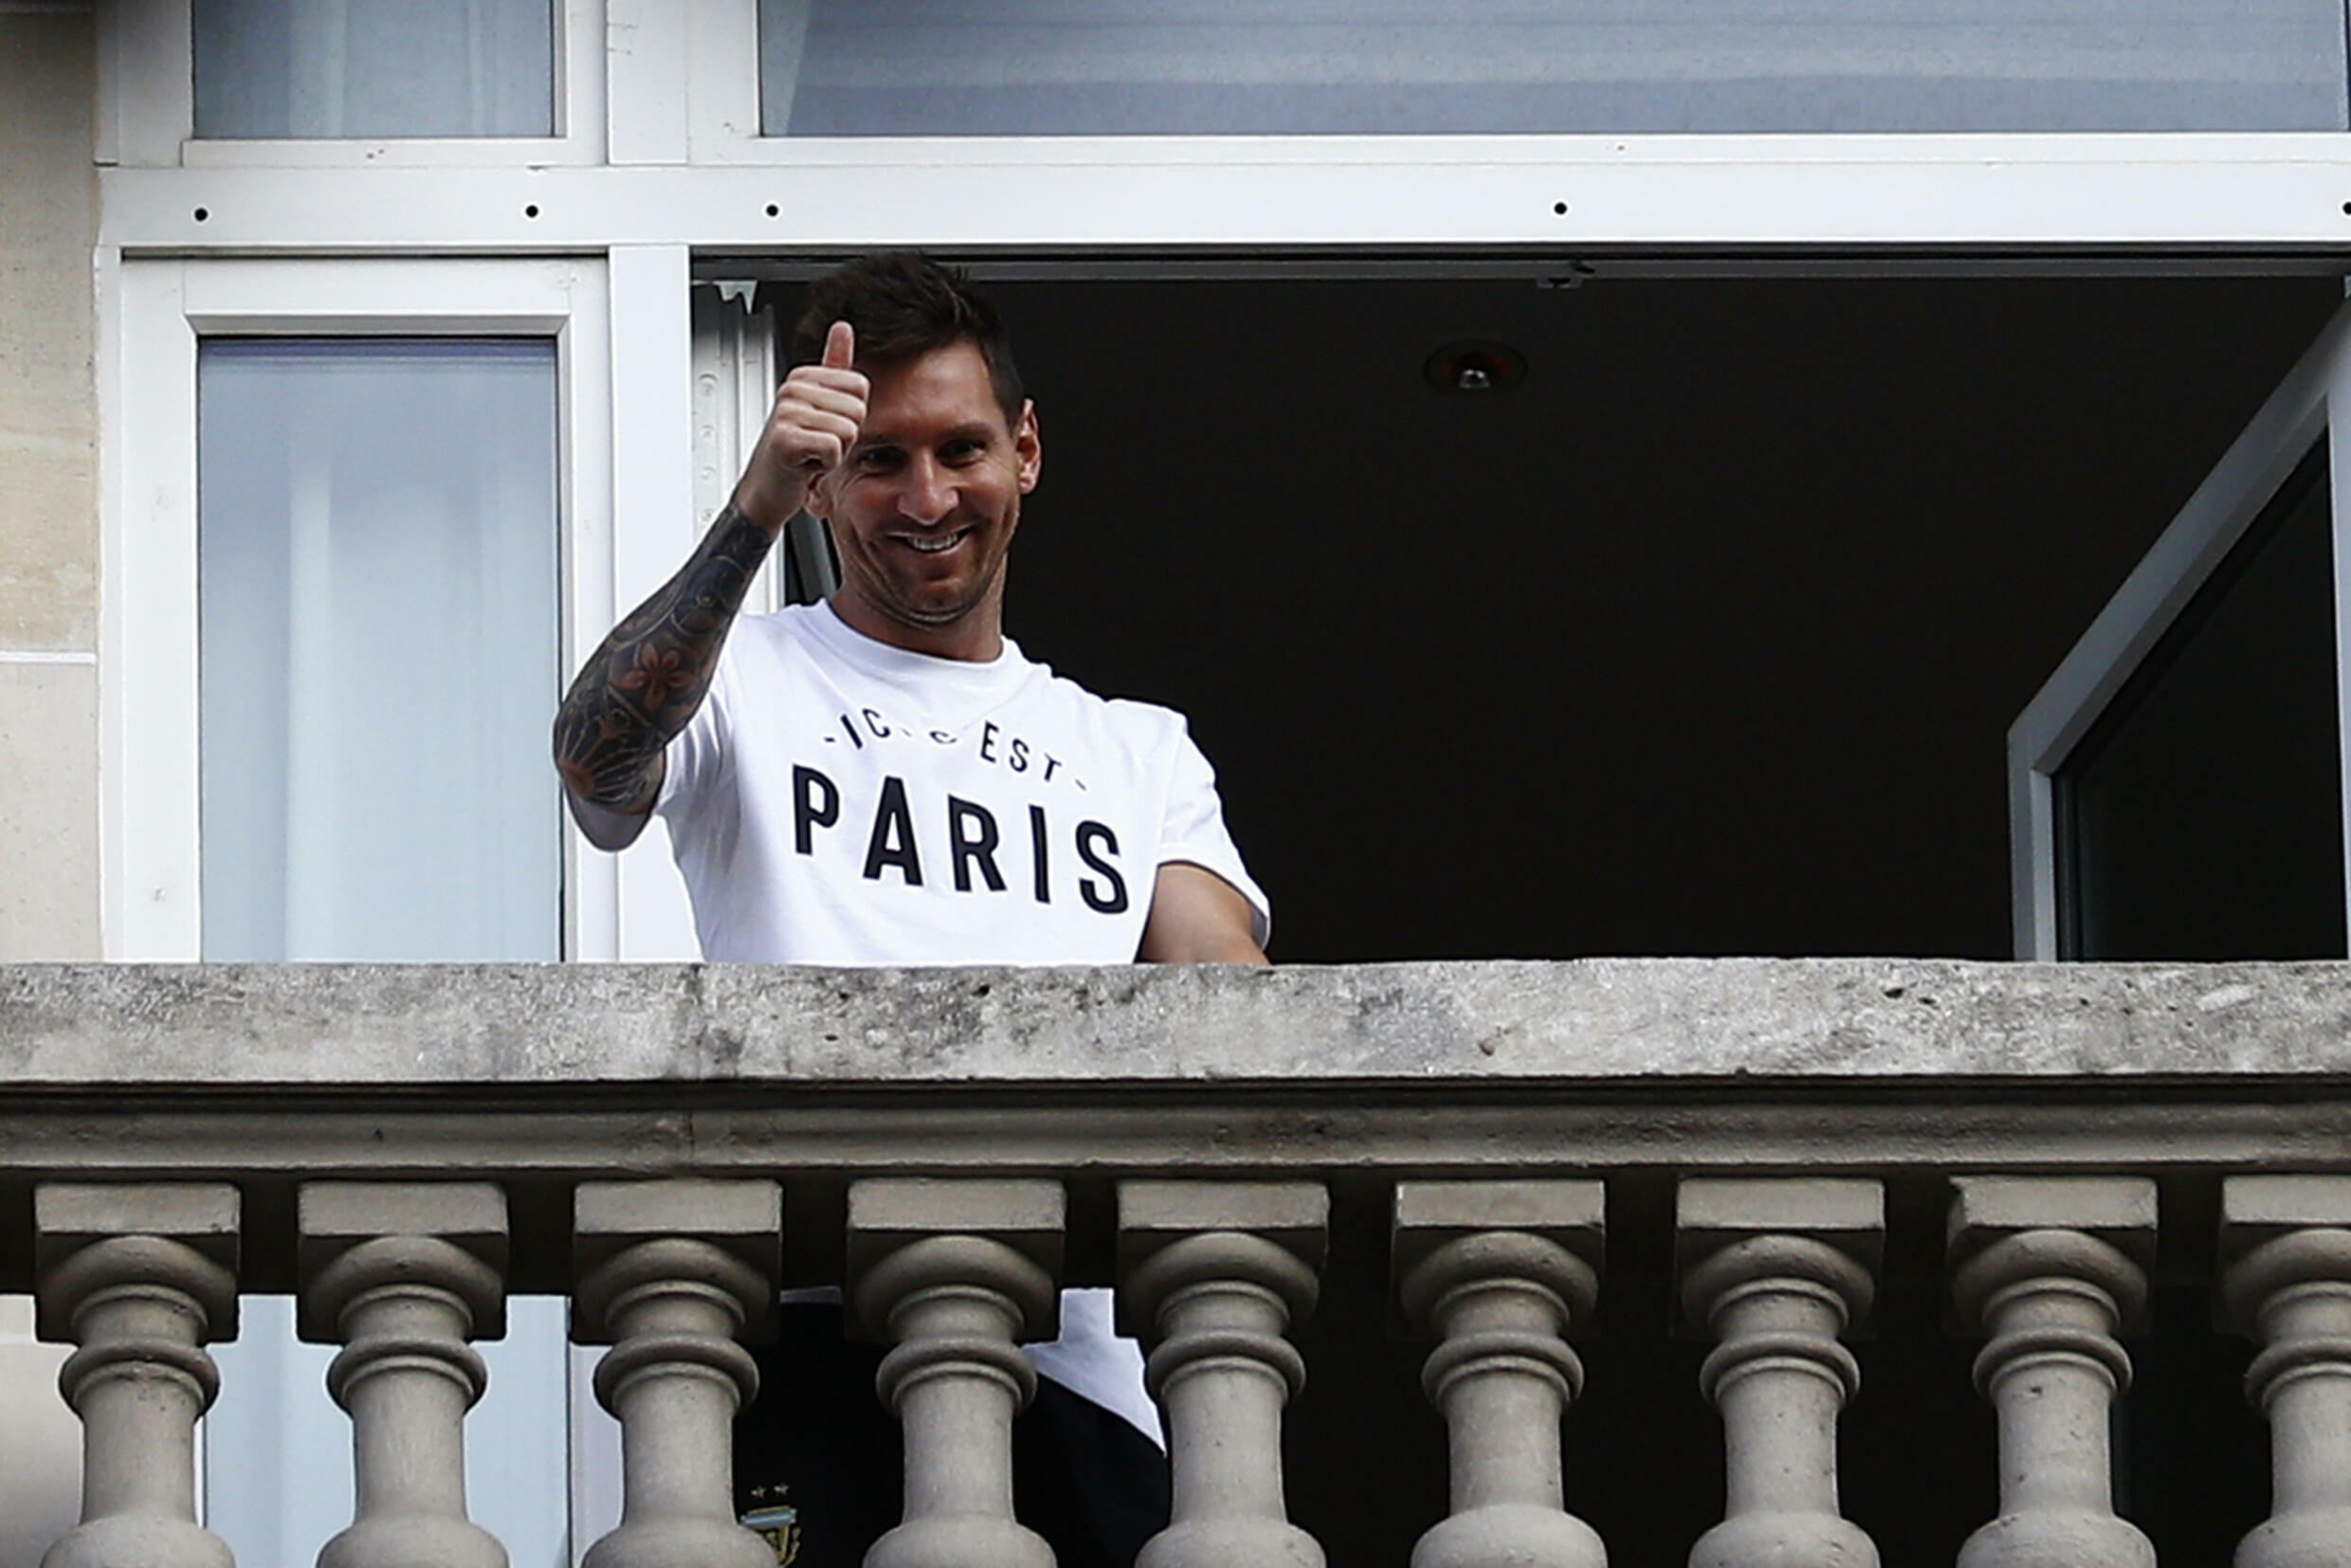 Argentinian football supporters have also given the thumbs up to Lionel Messi's projected move to Paris St-Germain